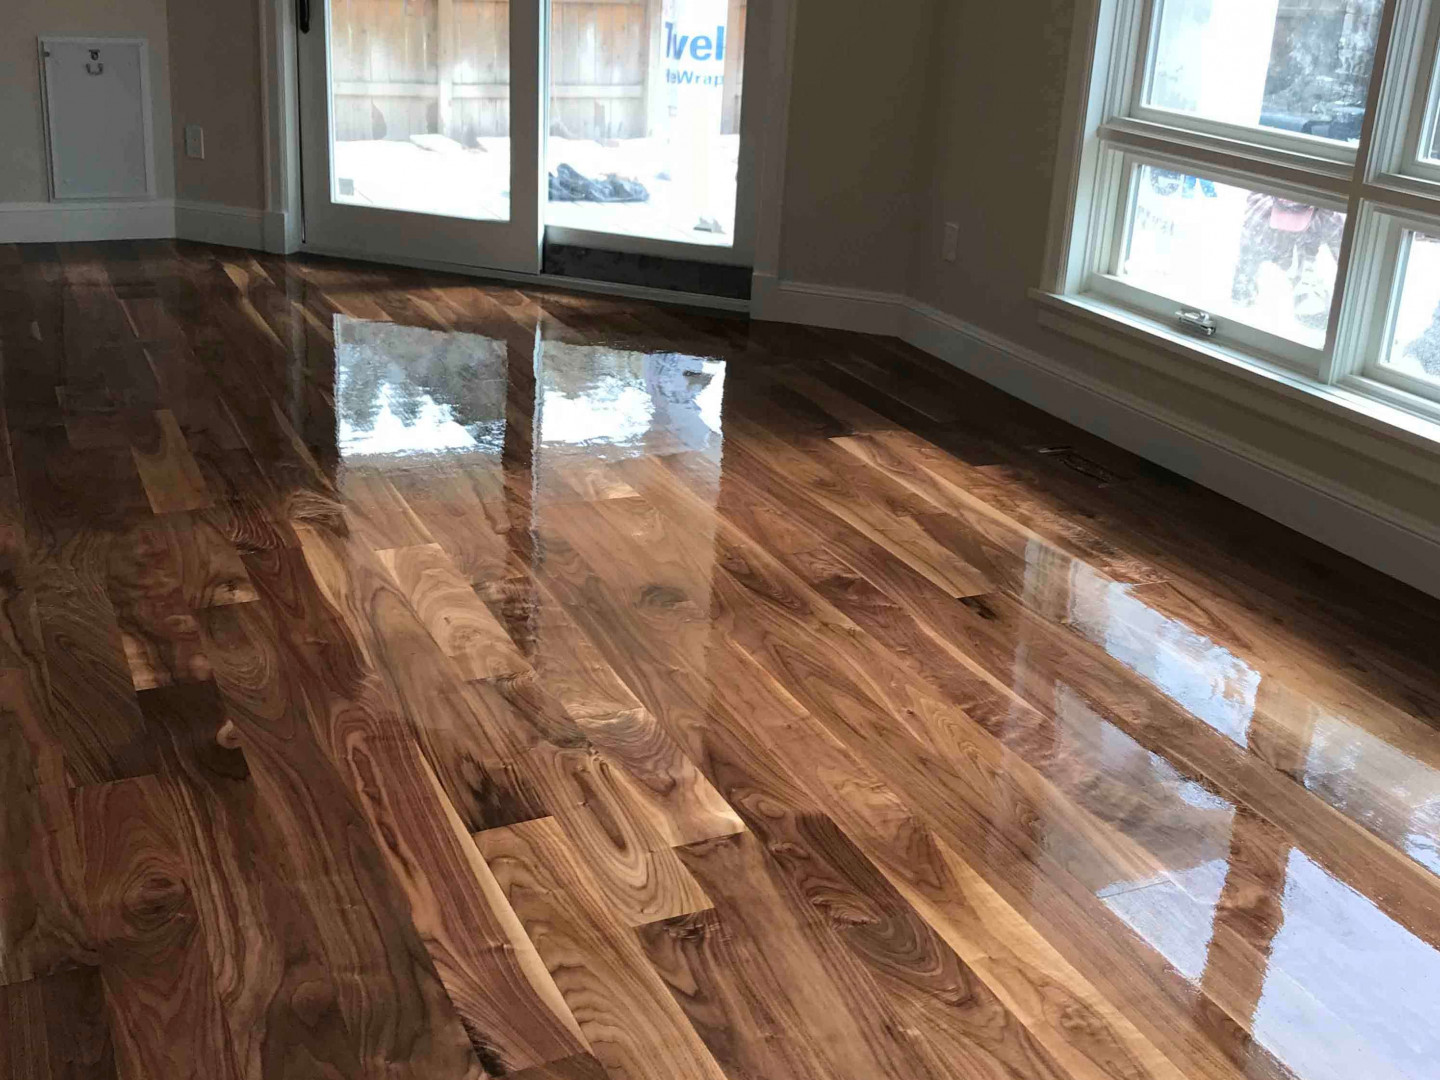 Refinishing your floors shouldn't be a hard choice